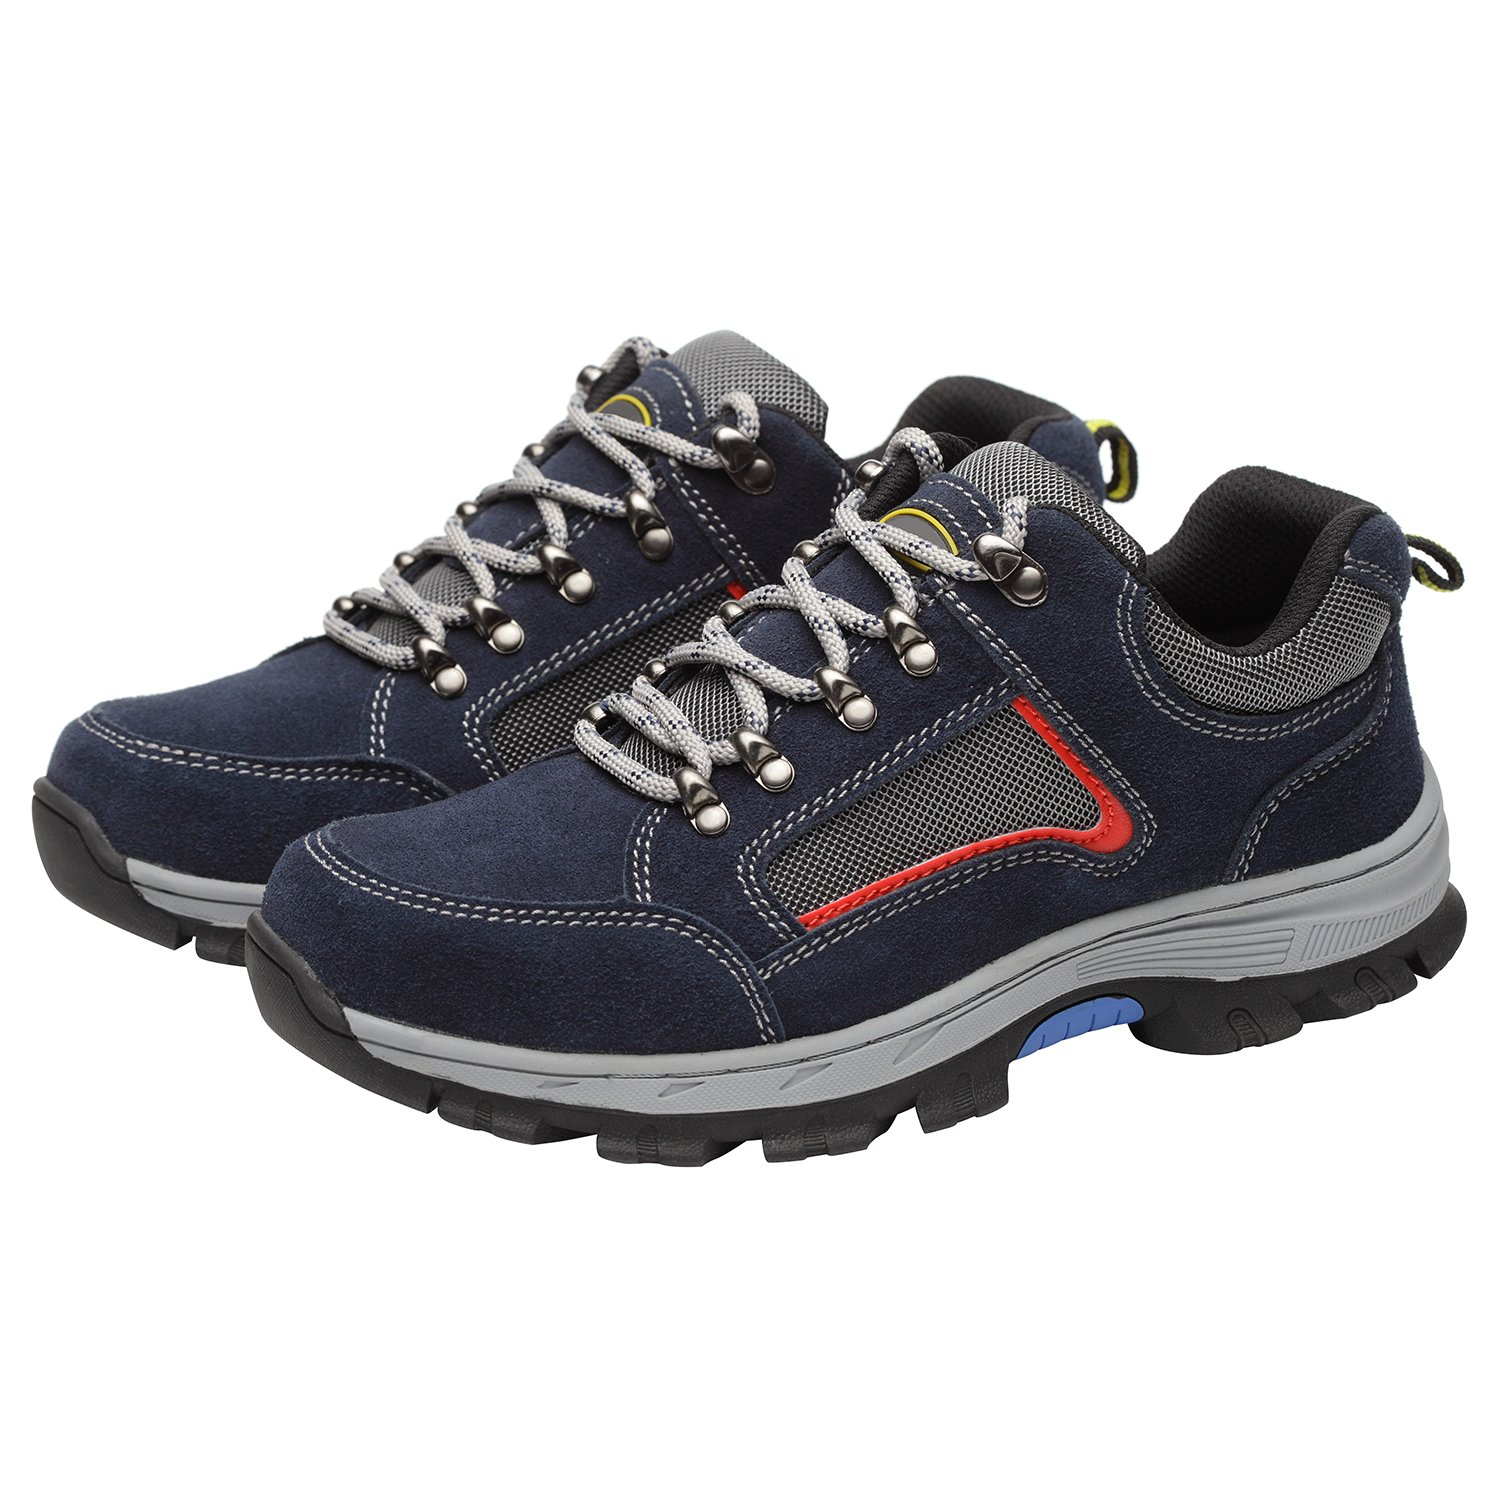 Optimal Women's Safety Shoes Work Shoes Protect Toe Shoes by Optimal Product (Image #7)